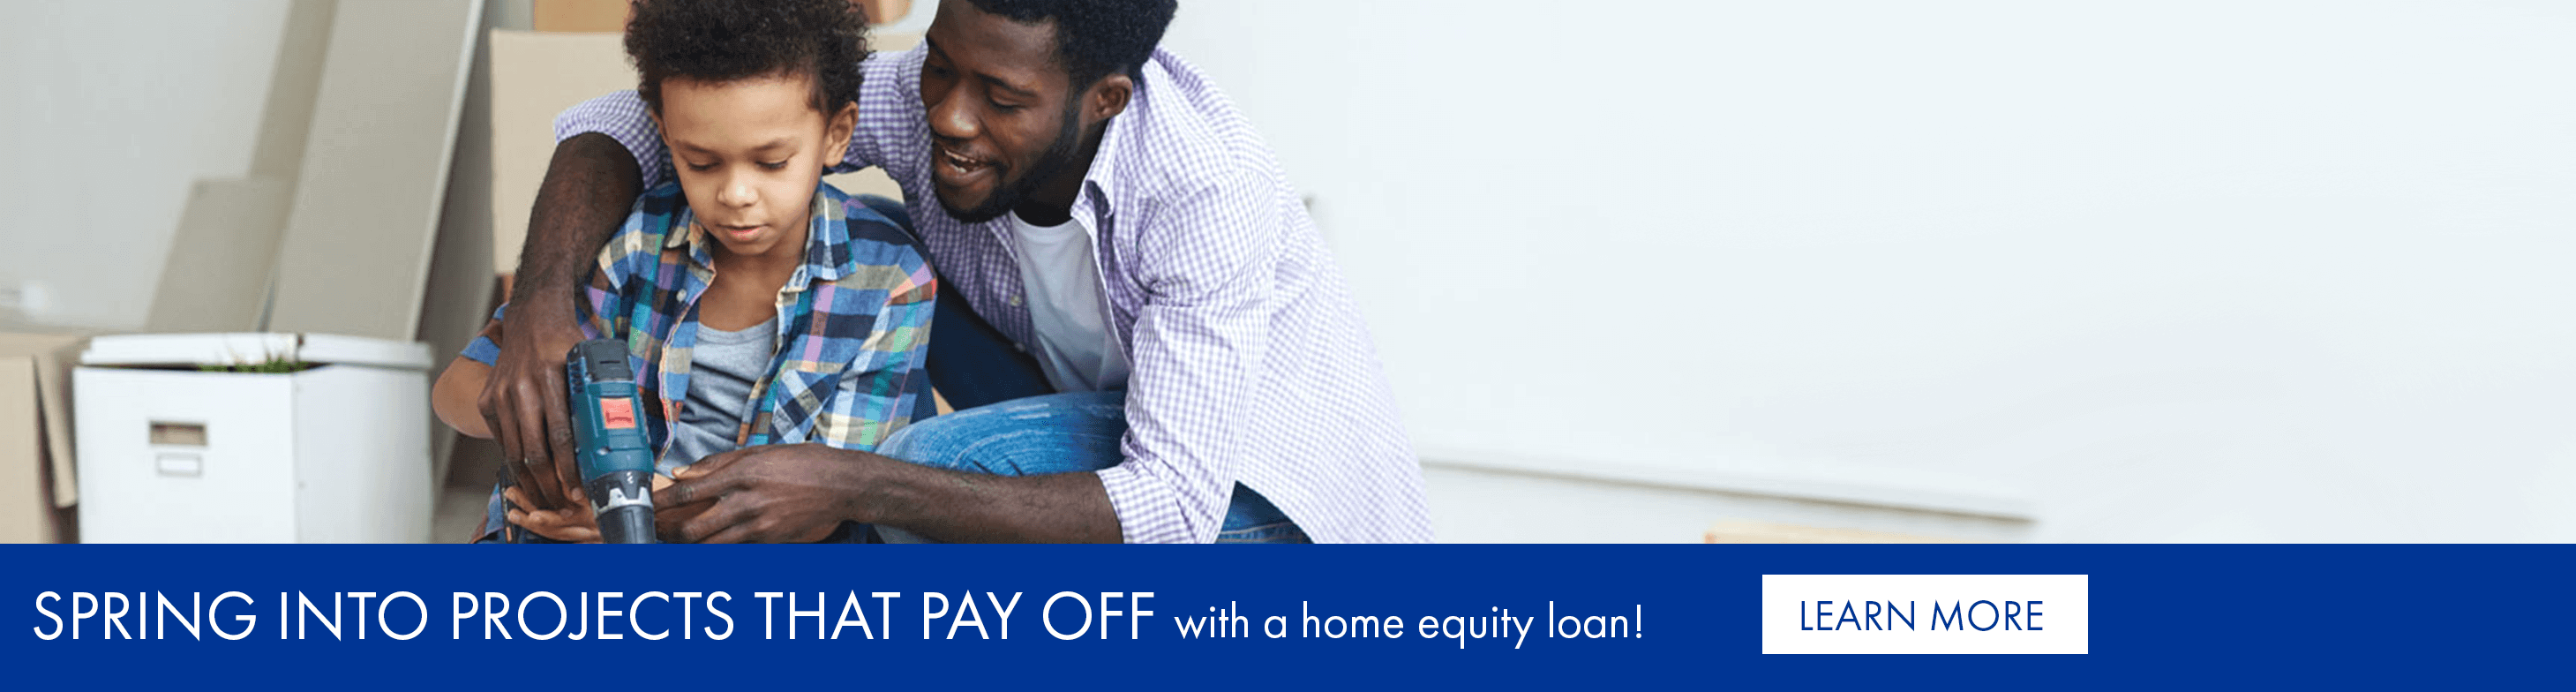 Spring into projects that pay off with a home equity loan!